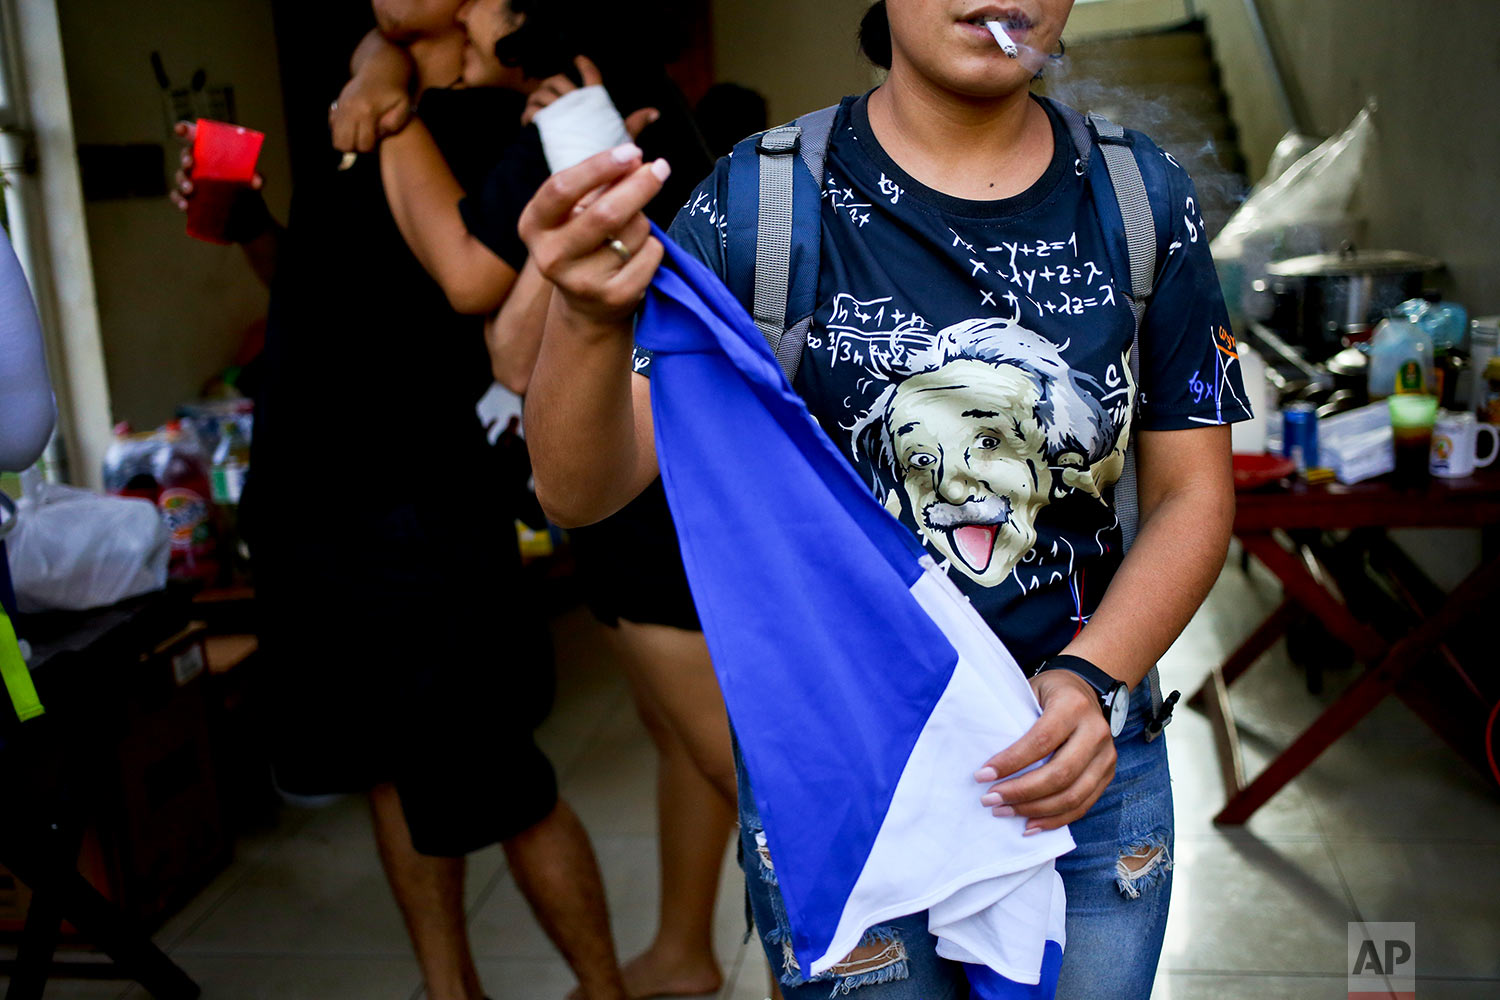 In this June 1, 2018 photo, a university student wears an Albert Einstein T-shirt as she smokes inside an improvised kitchen set up by anti-government students who are barricading themselves inside the Autonomous University of Nicaragua for protection from government security and armed supporters in Managua, Nicaragua. (AP Photo/Esteban Felix)